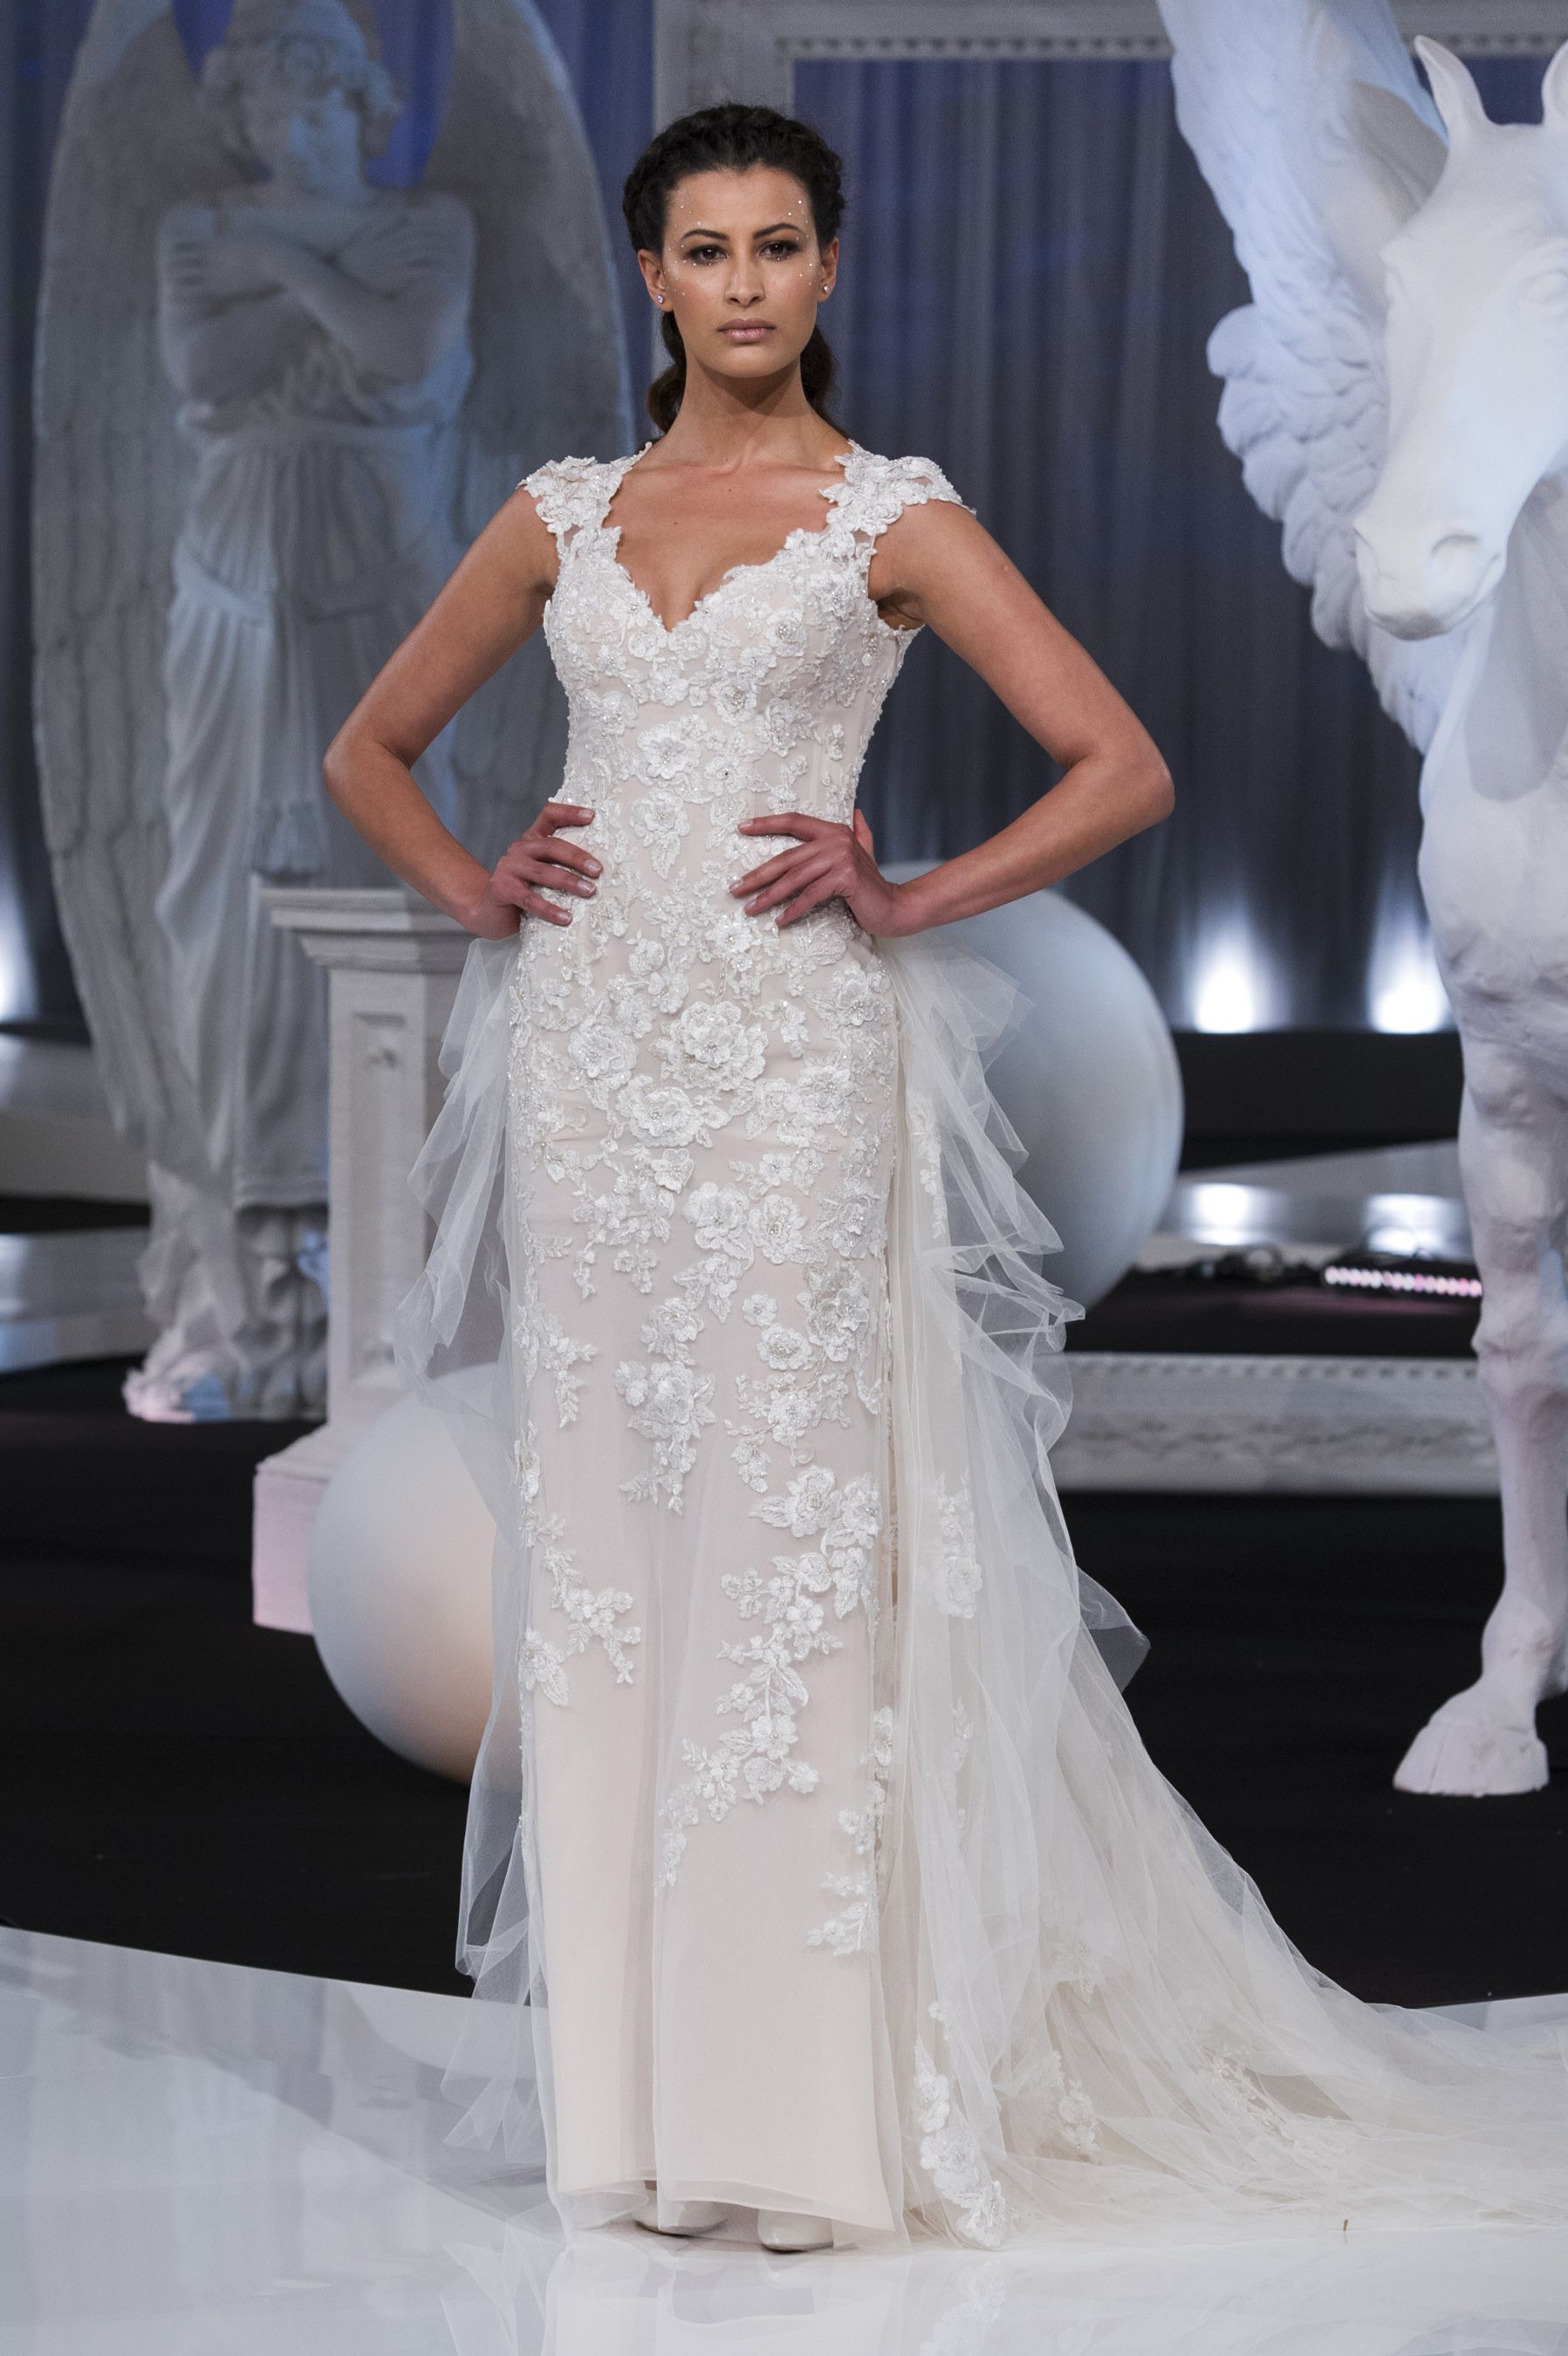 Nicole spring bridal fashion show the impression wedding